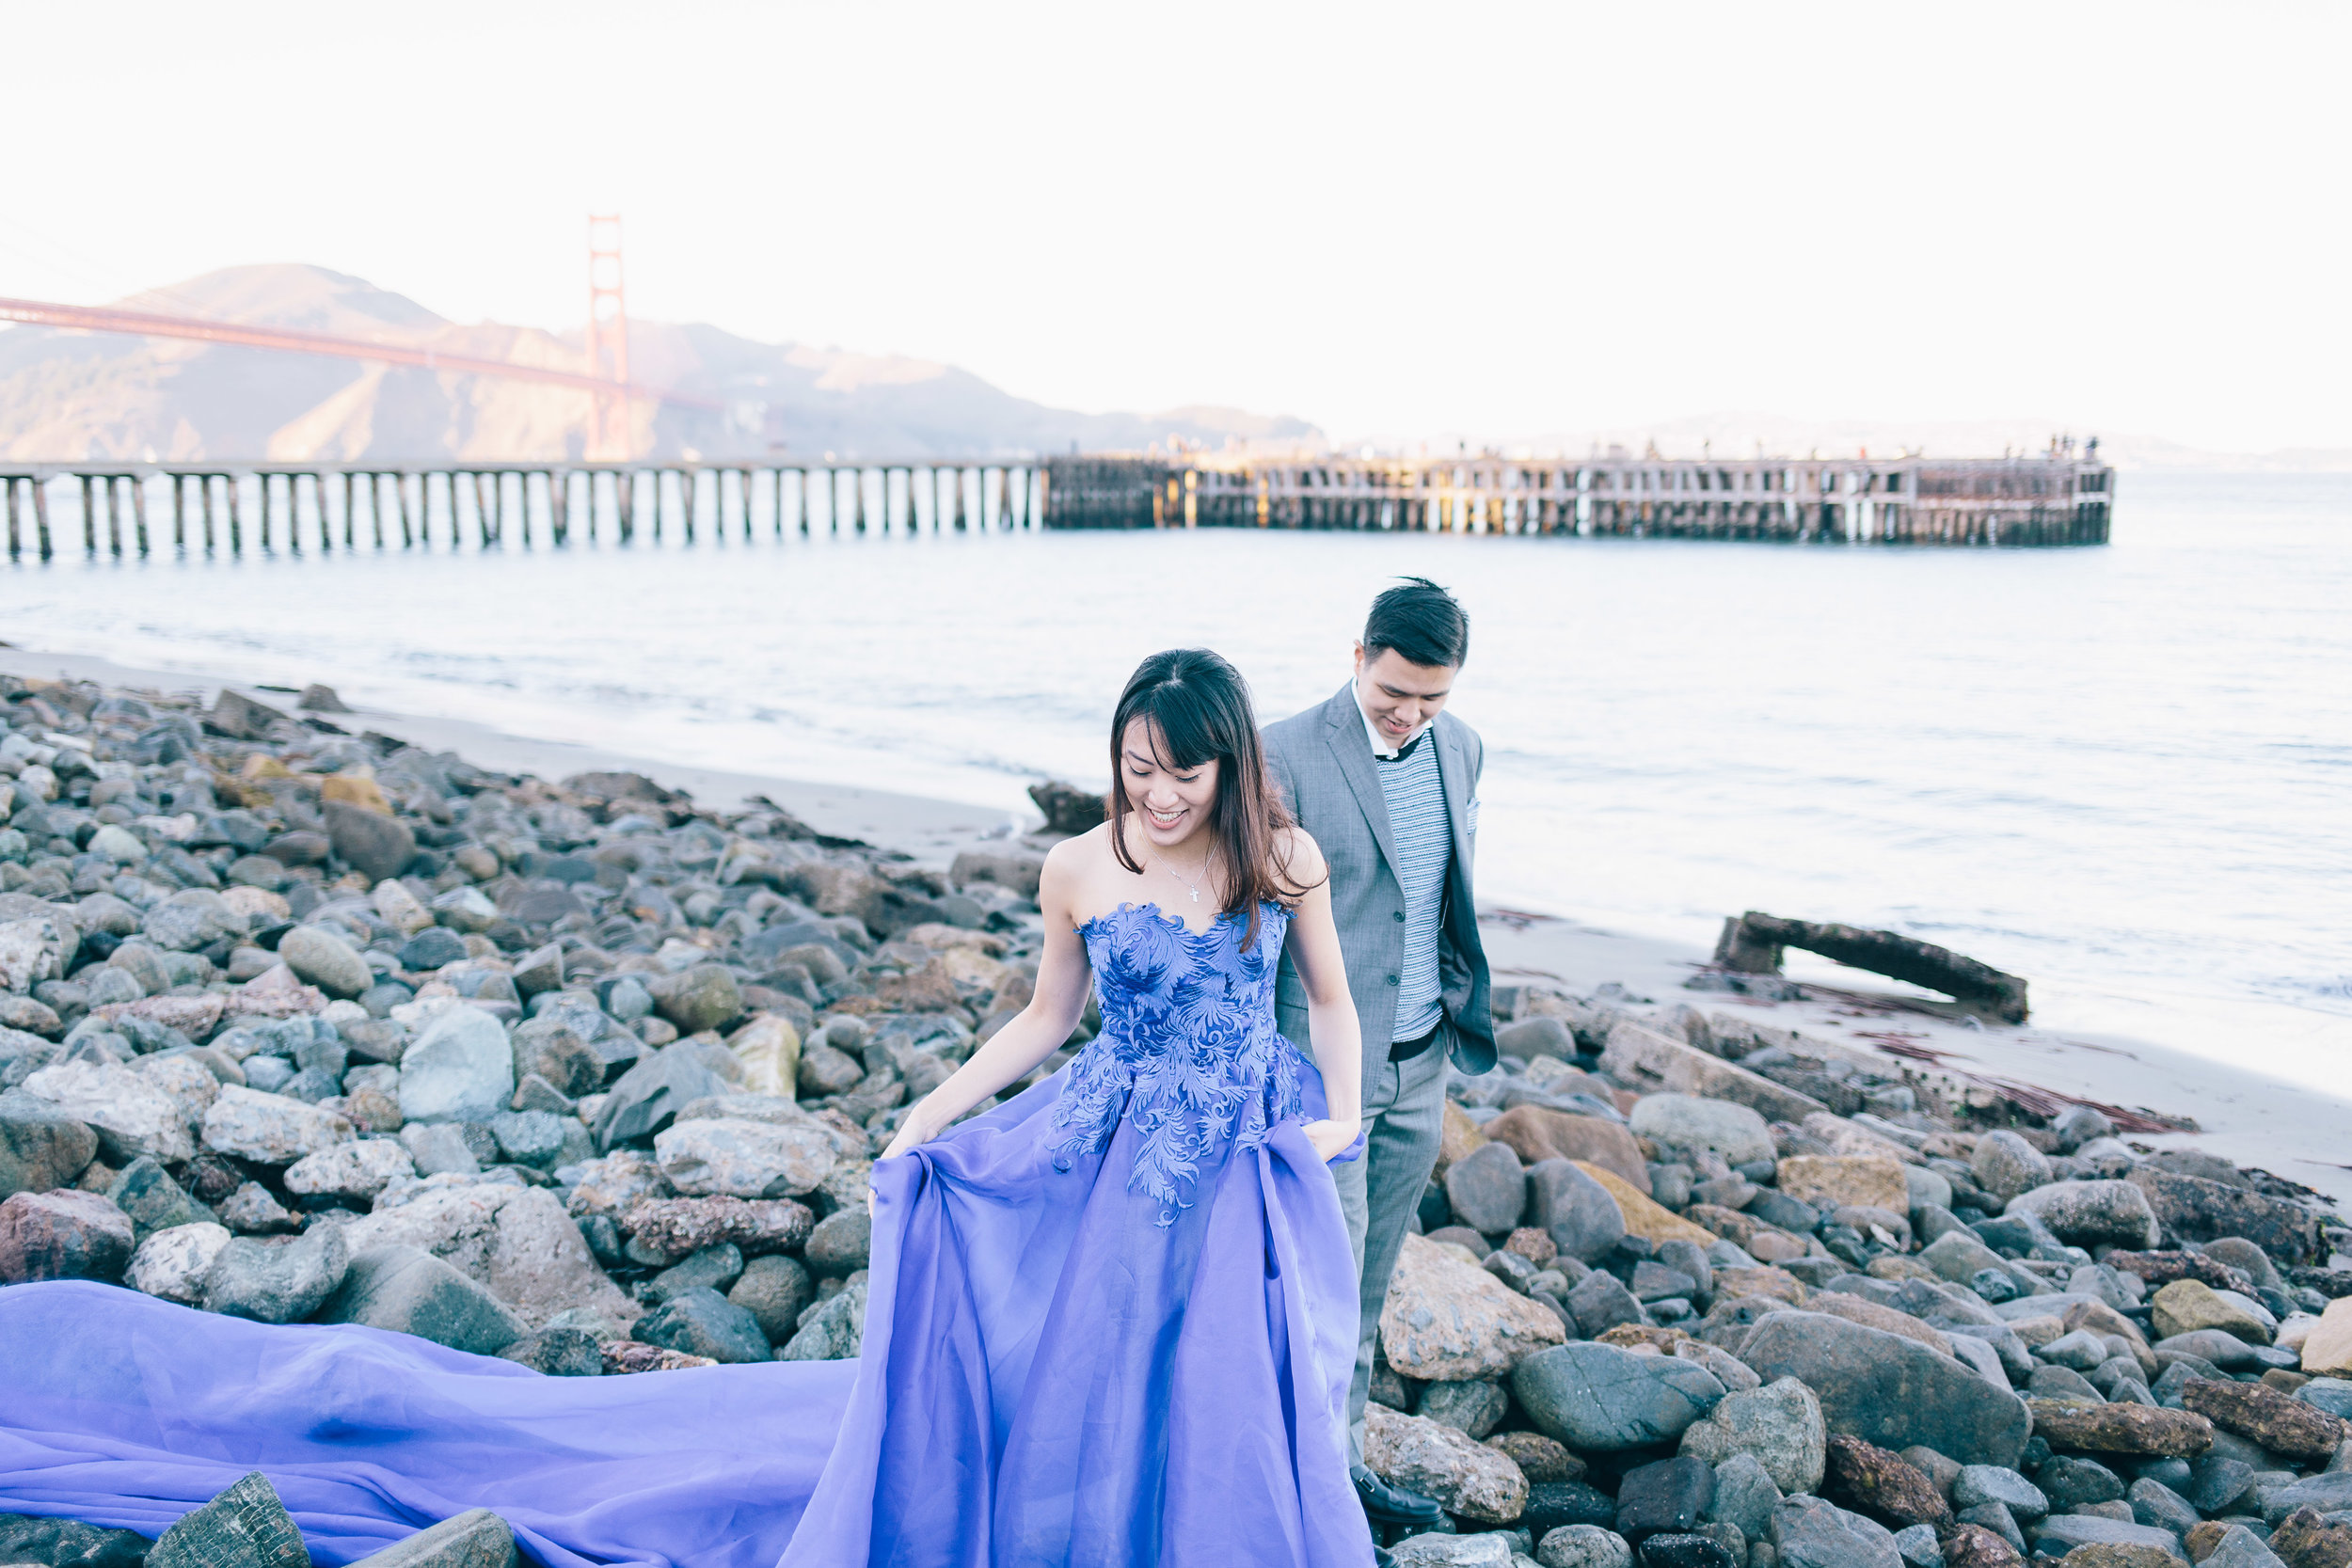 Pre-Wedding Photos in San Francisco by JBJ Pictures Pre-Wedding Photographer, Engagement Session and Wedding Photography in Napa, Sonoma, SF Bay Area (11).jpg